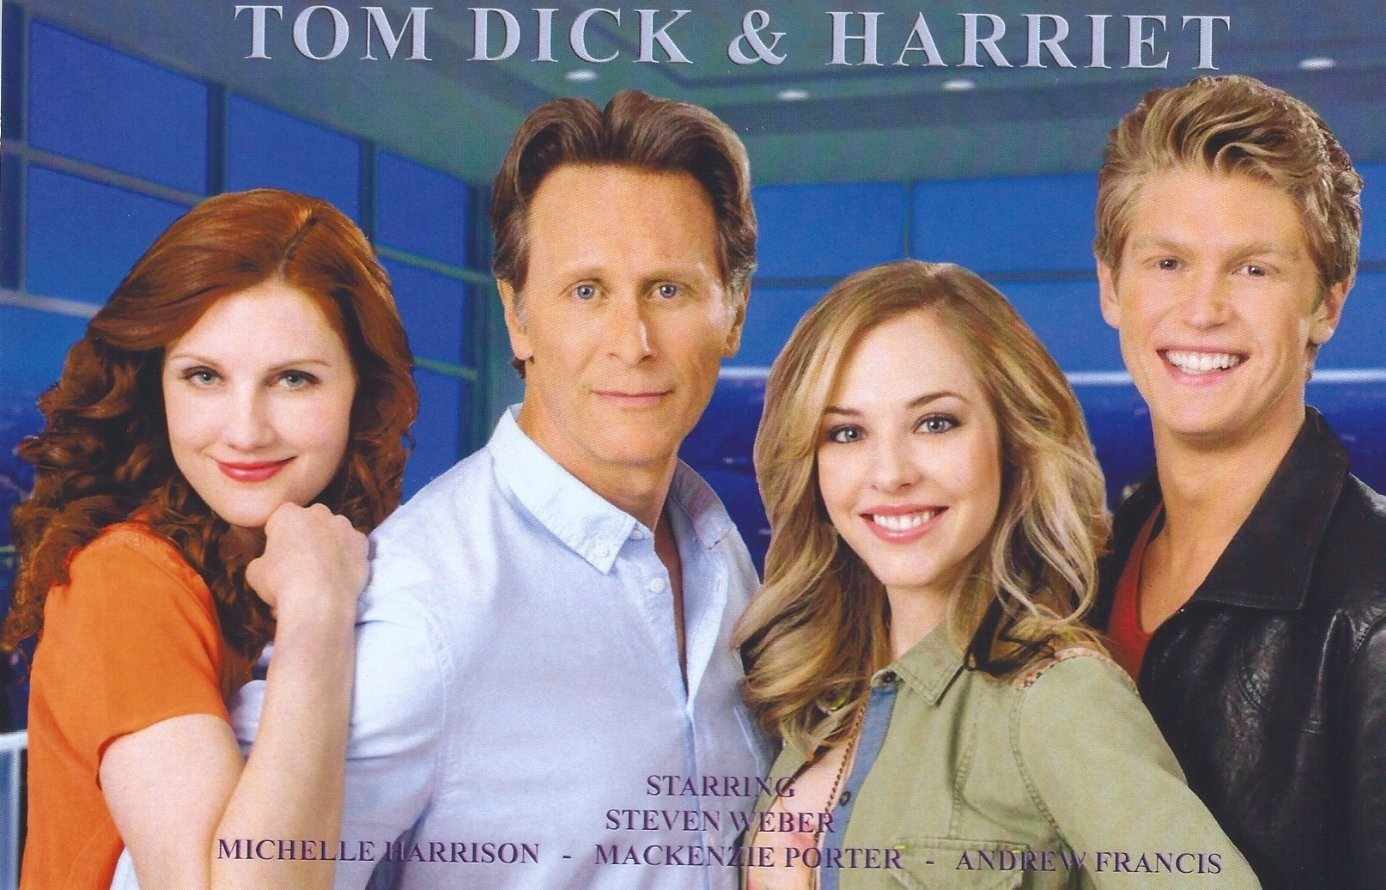 Tom, Dick & Harriet (2013) / M6